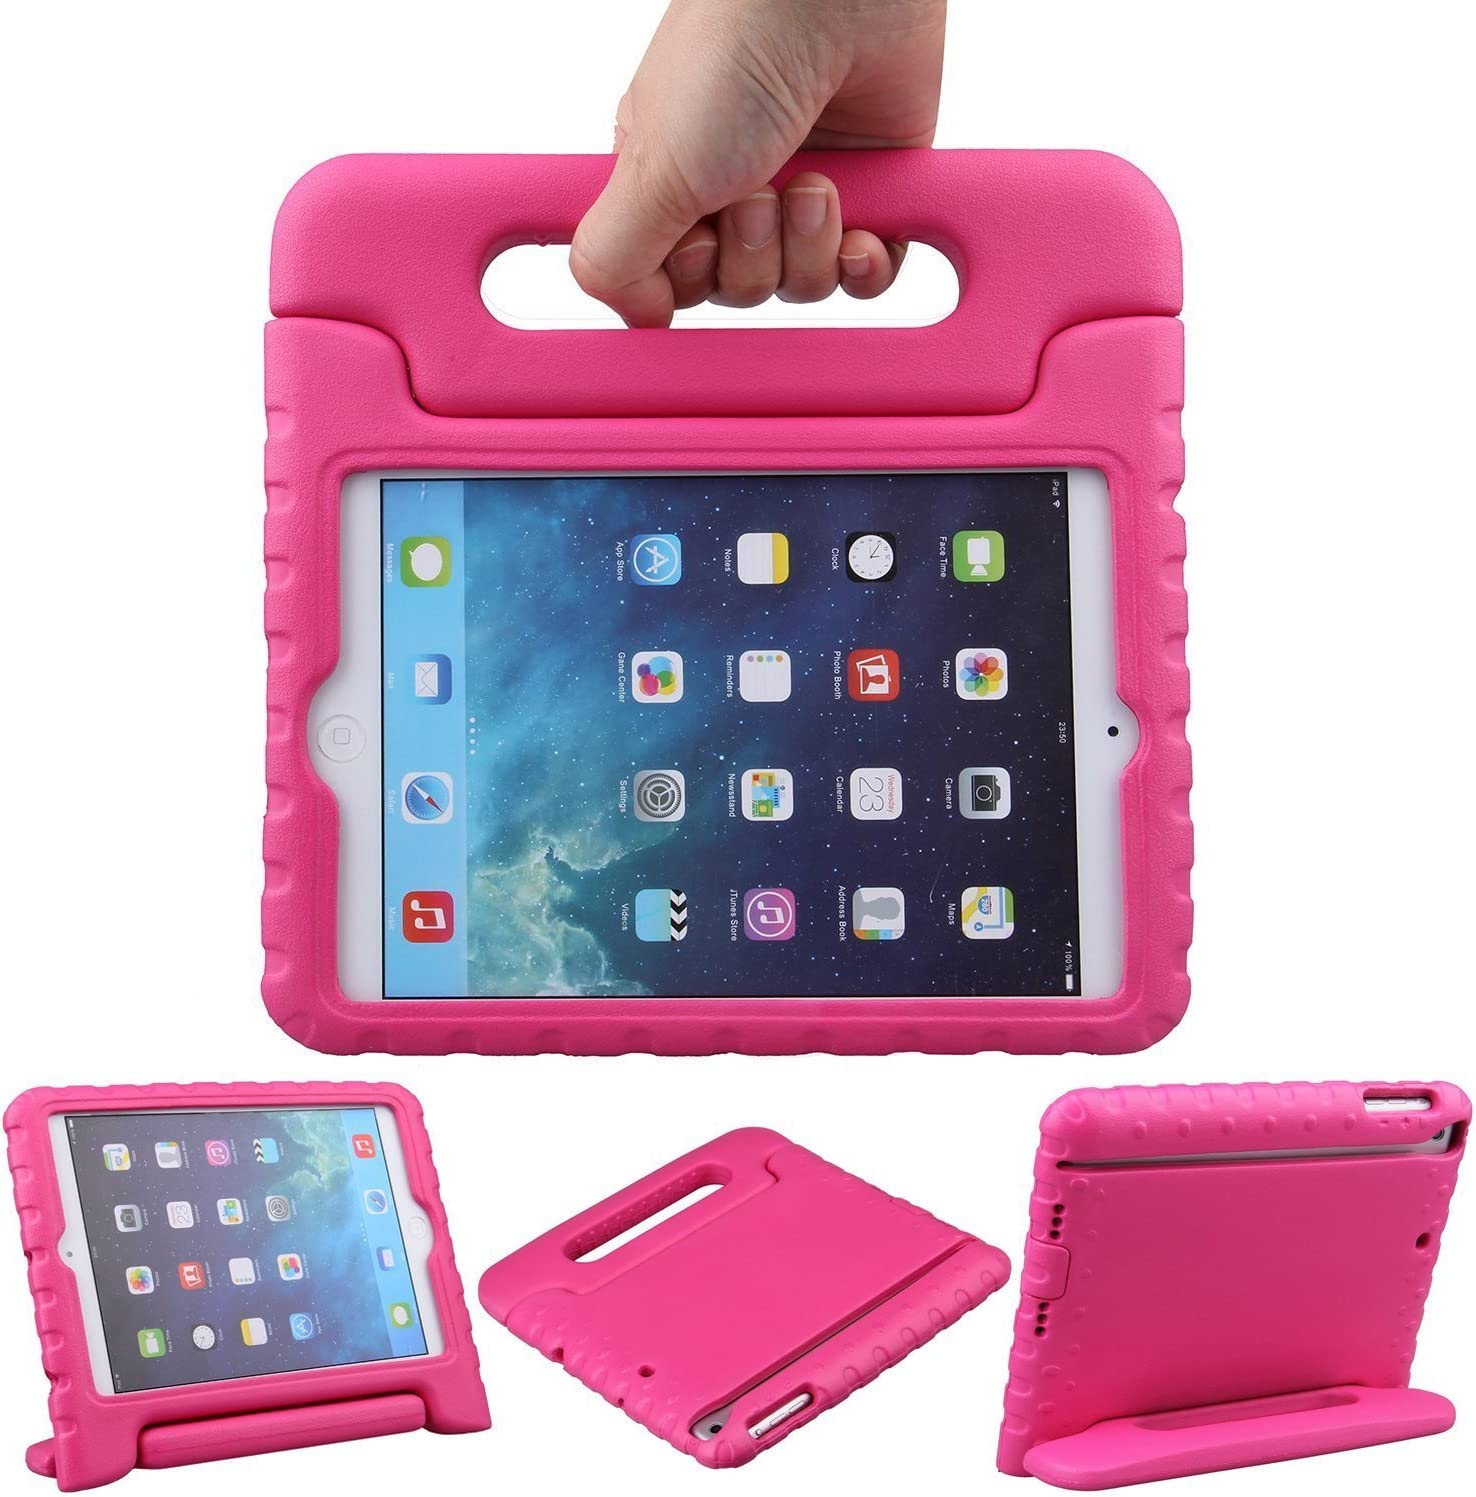 LEFON Kids Case for iPad Mini Shockproof Convertible Handle Light Weight Super Protective Stand Cover Case for Apple iPad Mini 3rd Gen/Mini 2 / Mini 1 (Rosy)